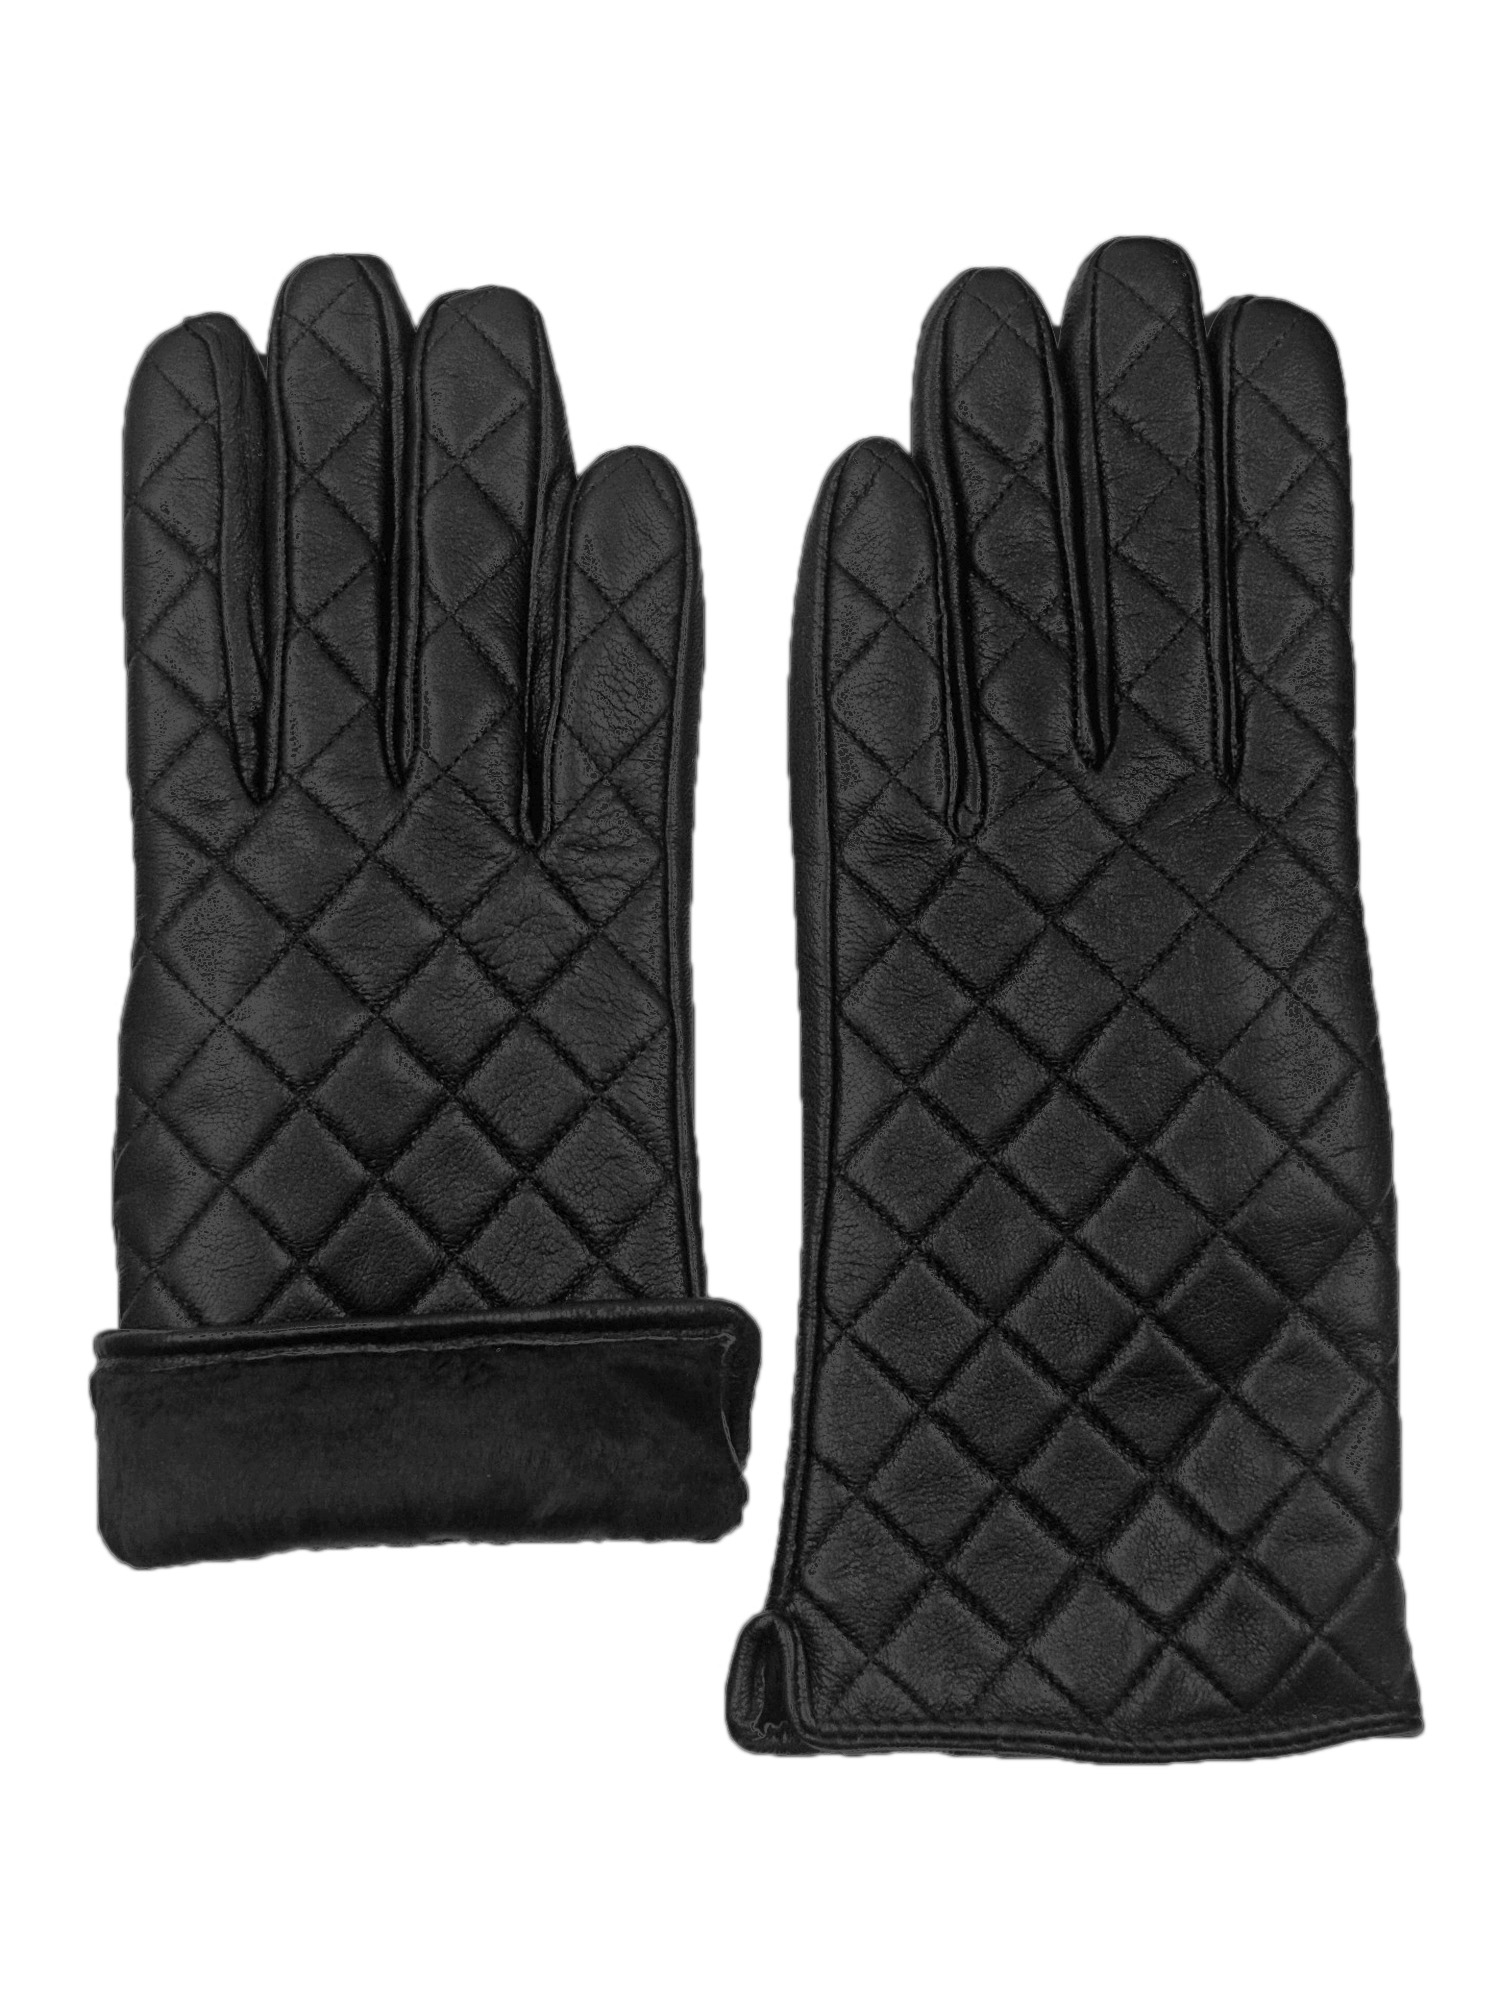 Giromy-Samoni-Womens-Warm-Winter-Leather-Quilted-Dress-Driving-Gloves-Black thumbnail 10